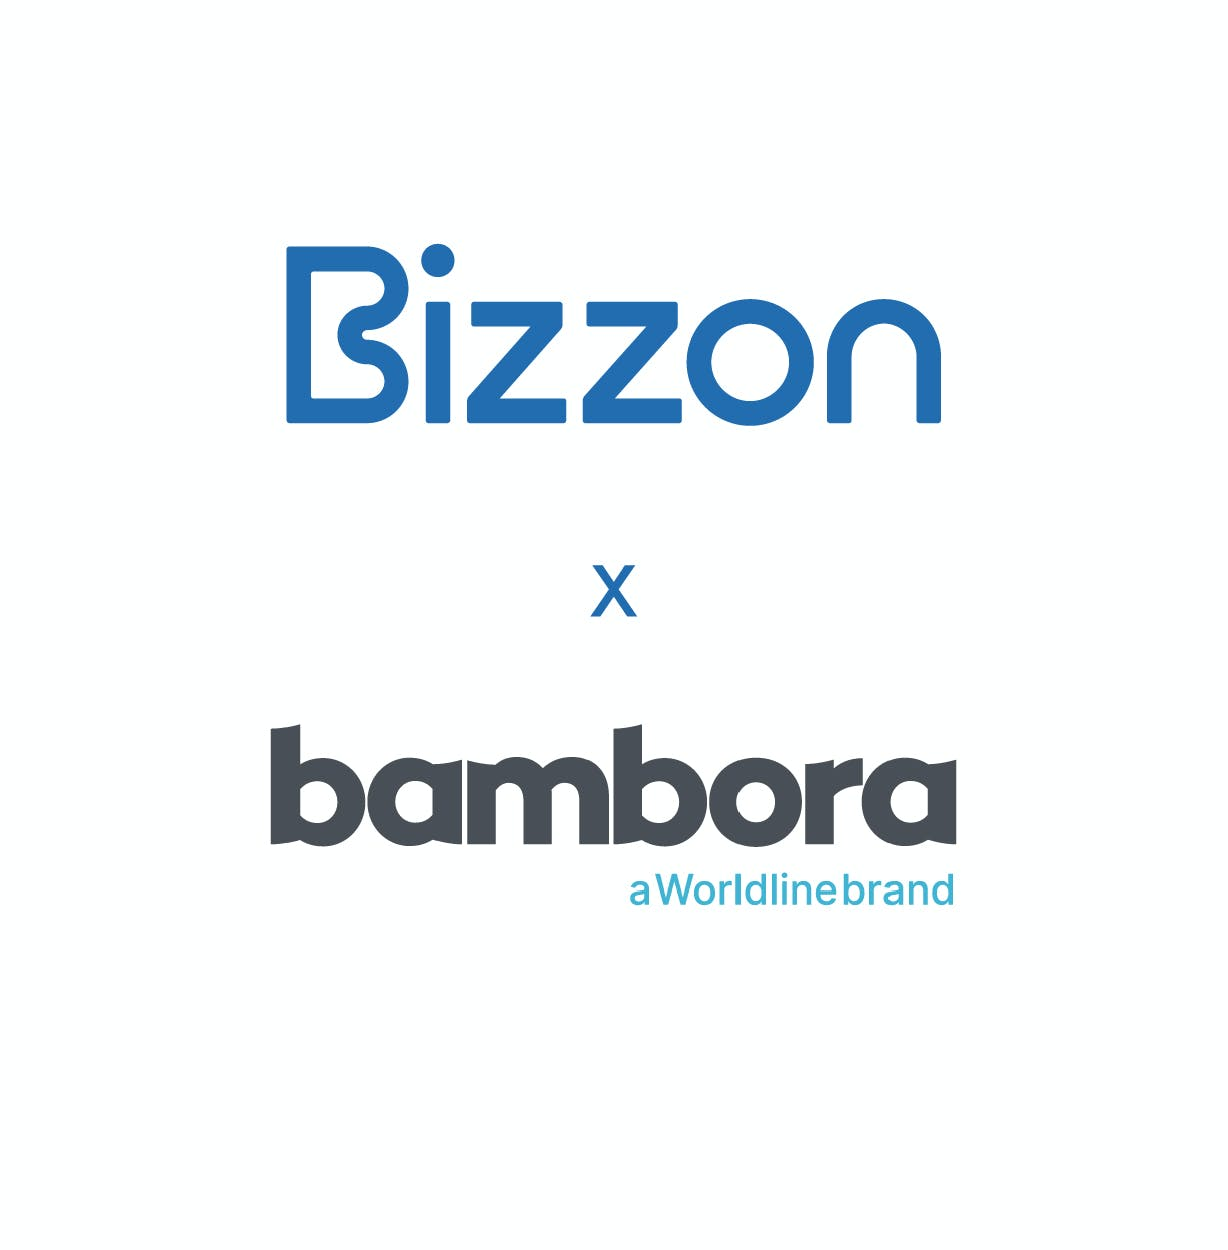 Our partnership with Bambora provides merchants with a seamless and fully integrated payment experience